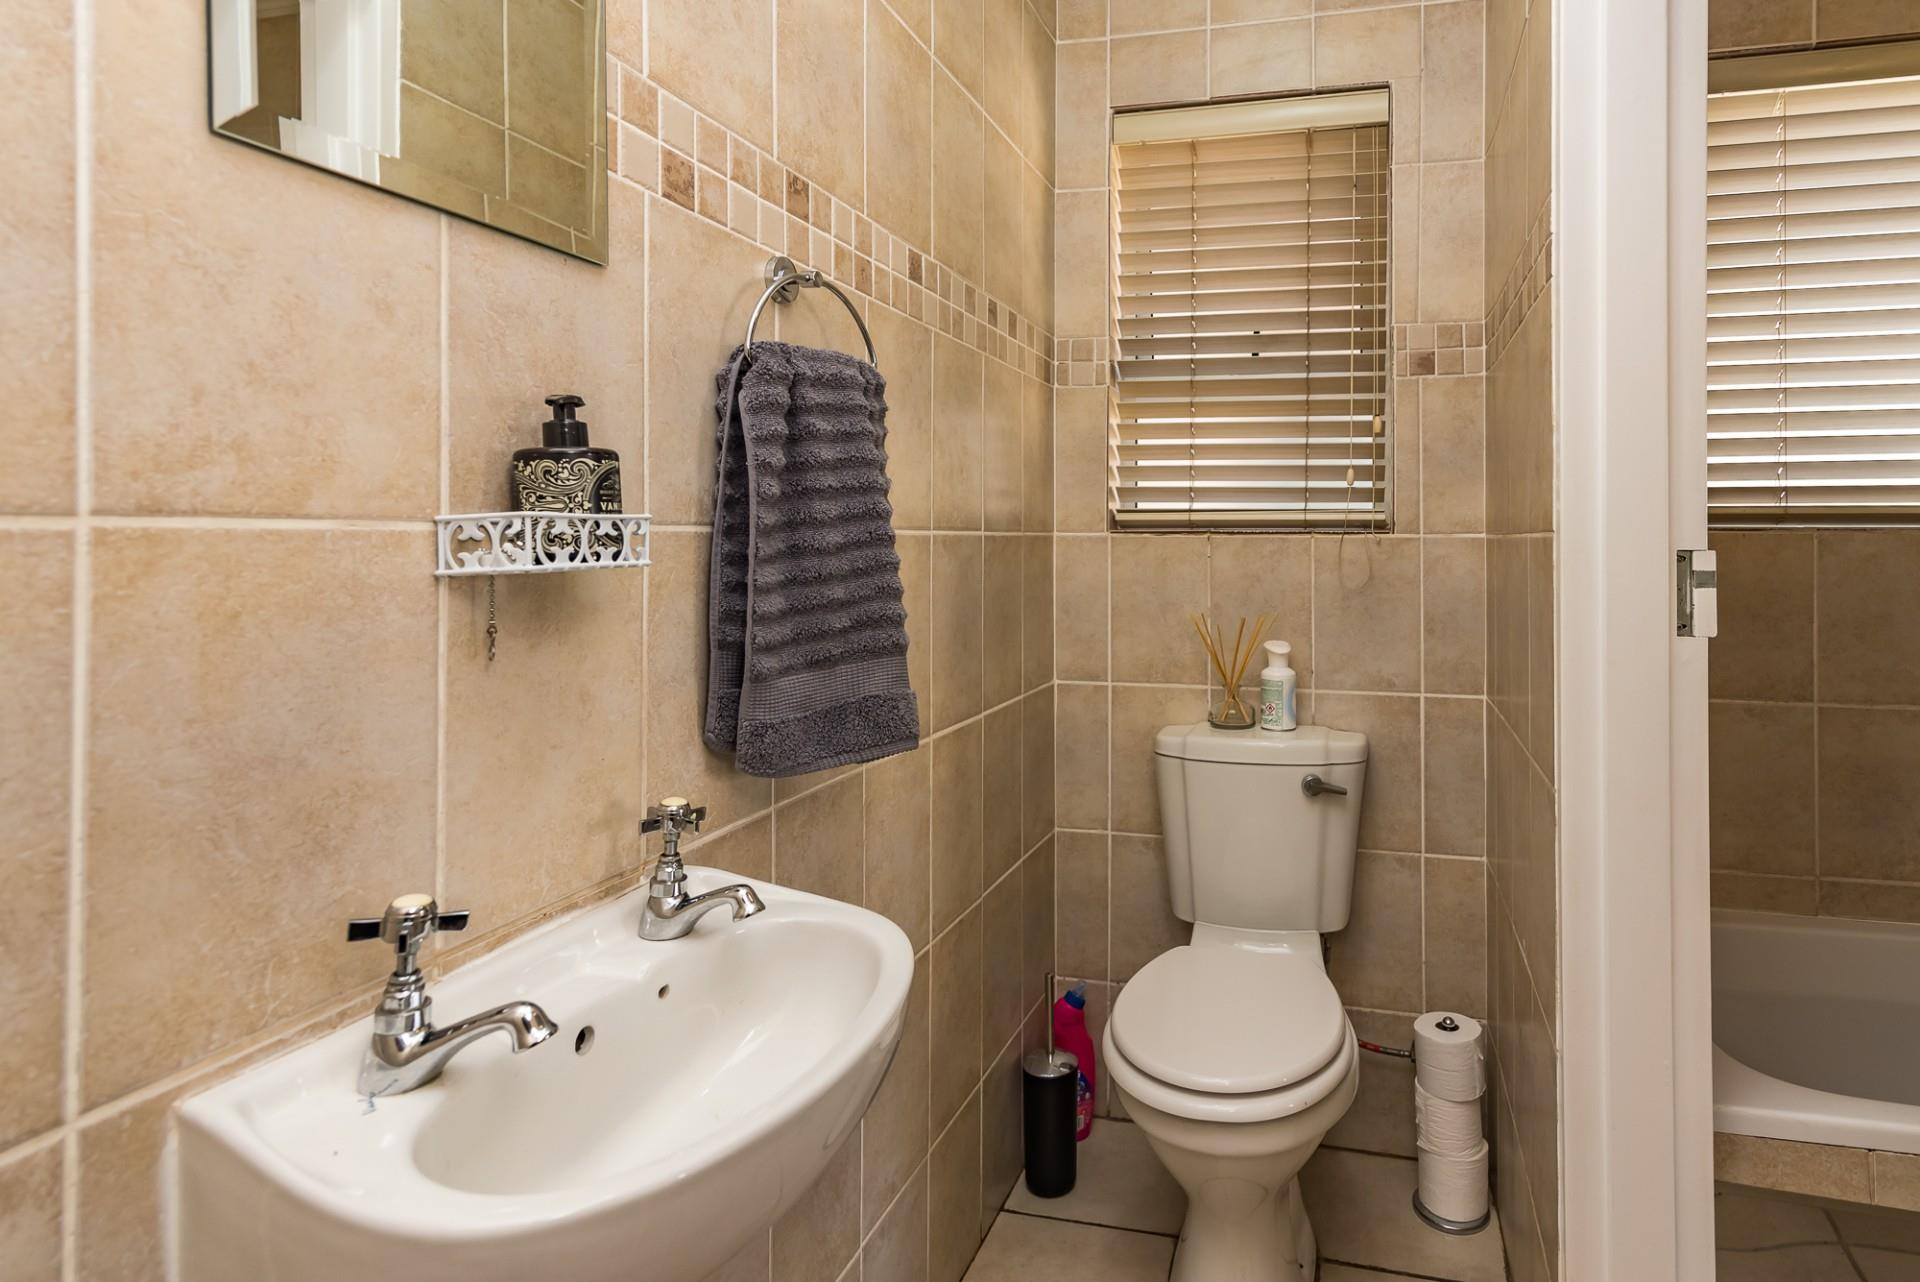 3 Bedroom Town house For Sale in Eagle Canyon Golf Estate